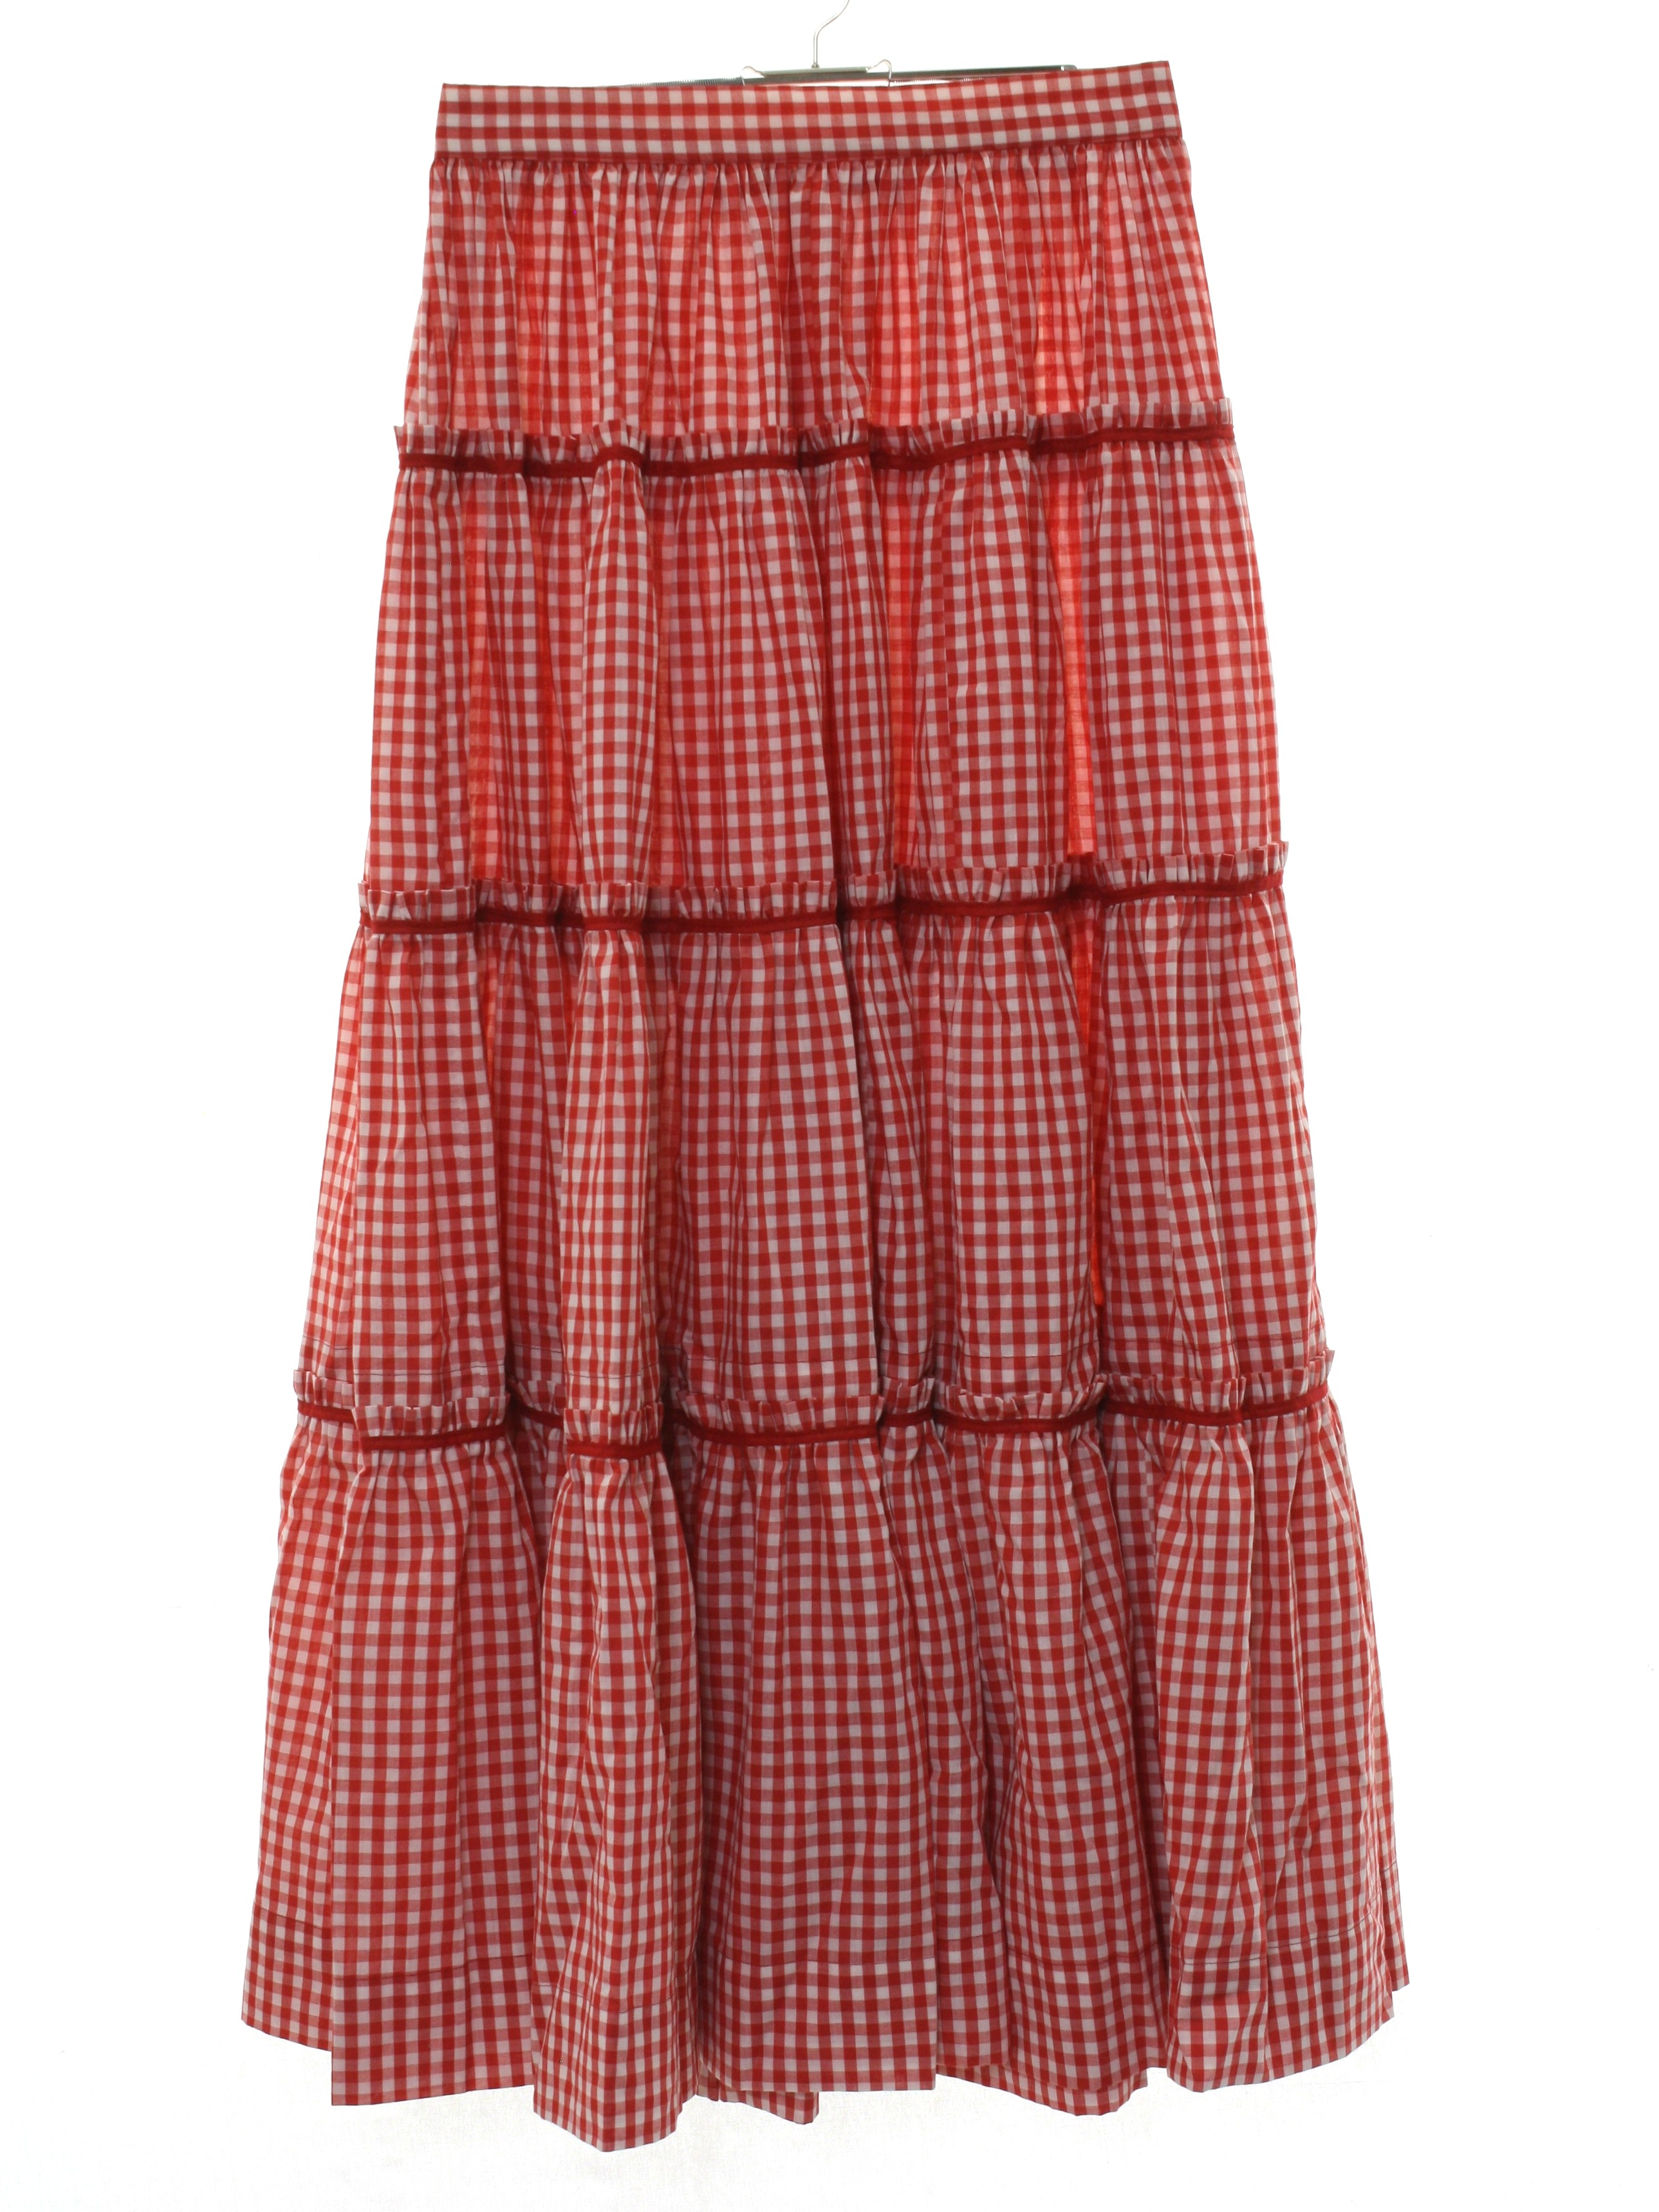 8b6ef638cc Vintage 1980's Hippie Skirt: 80s -home sewn- Womens red and white polyester  cotton blend maxi hippie skirt. Gingham checked print with bias banded and  ...